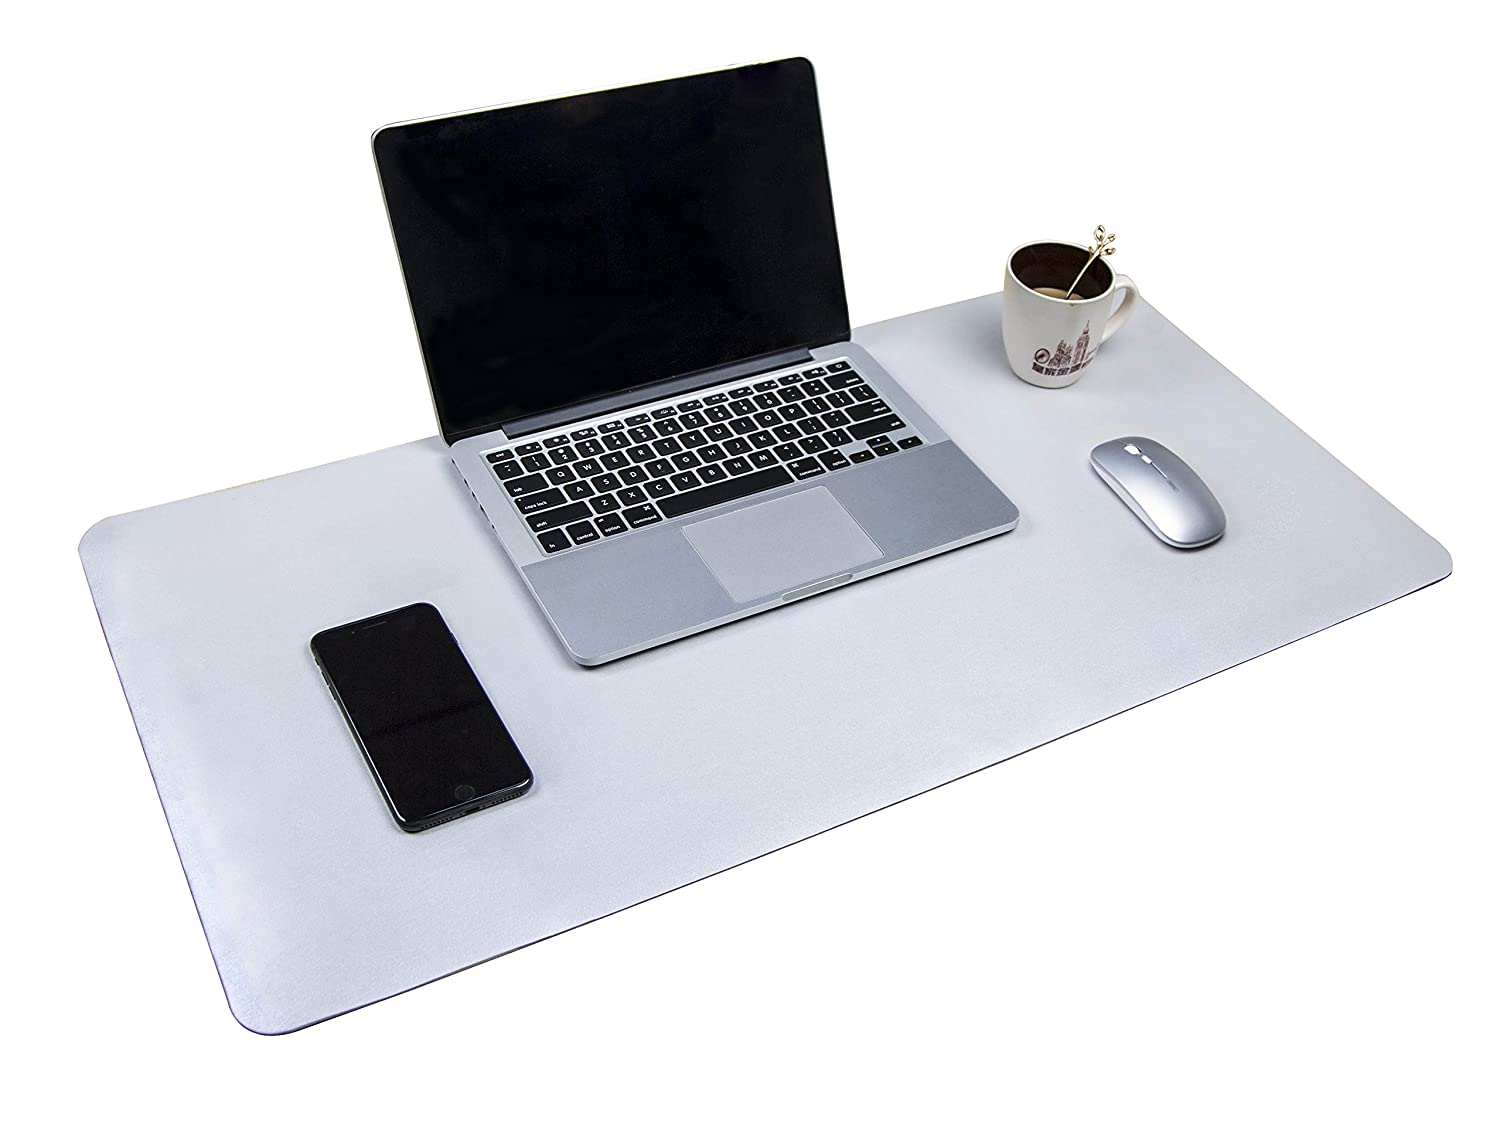 "Multifunctional Office Desk Pad, 31.5"" x 15.7"" YSAGi Ultra Thin Waterproof PU Leather Mouse Pad, Dual Use Desk Writing Mat for Office/Home (31.5"" x 15.7"", Silver)"